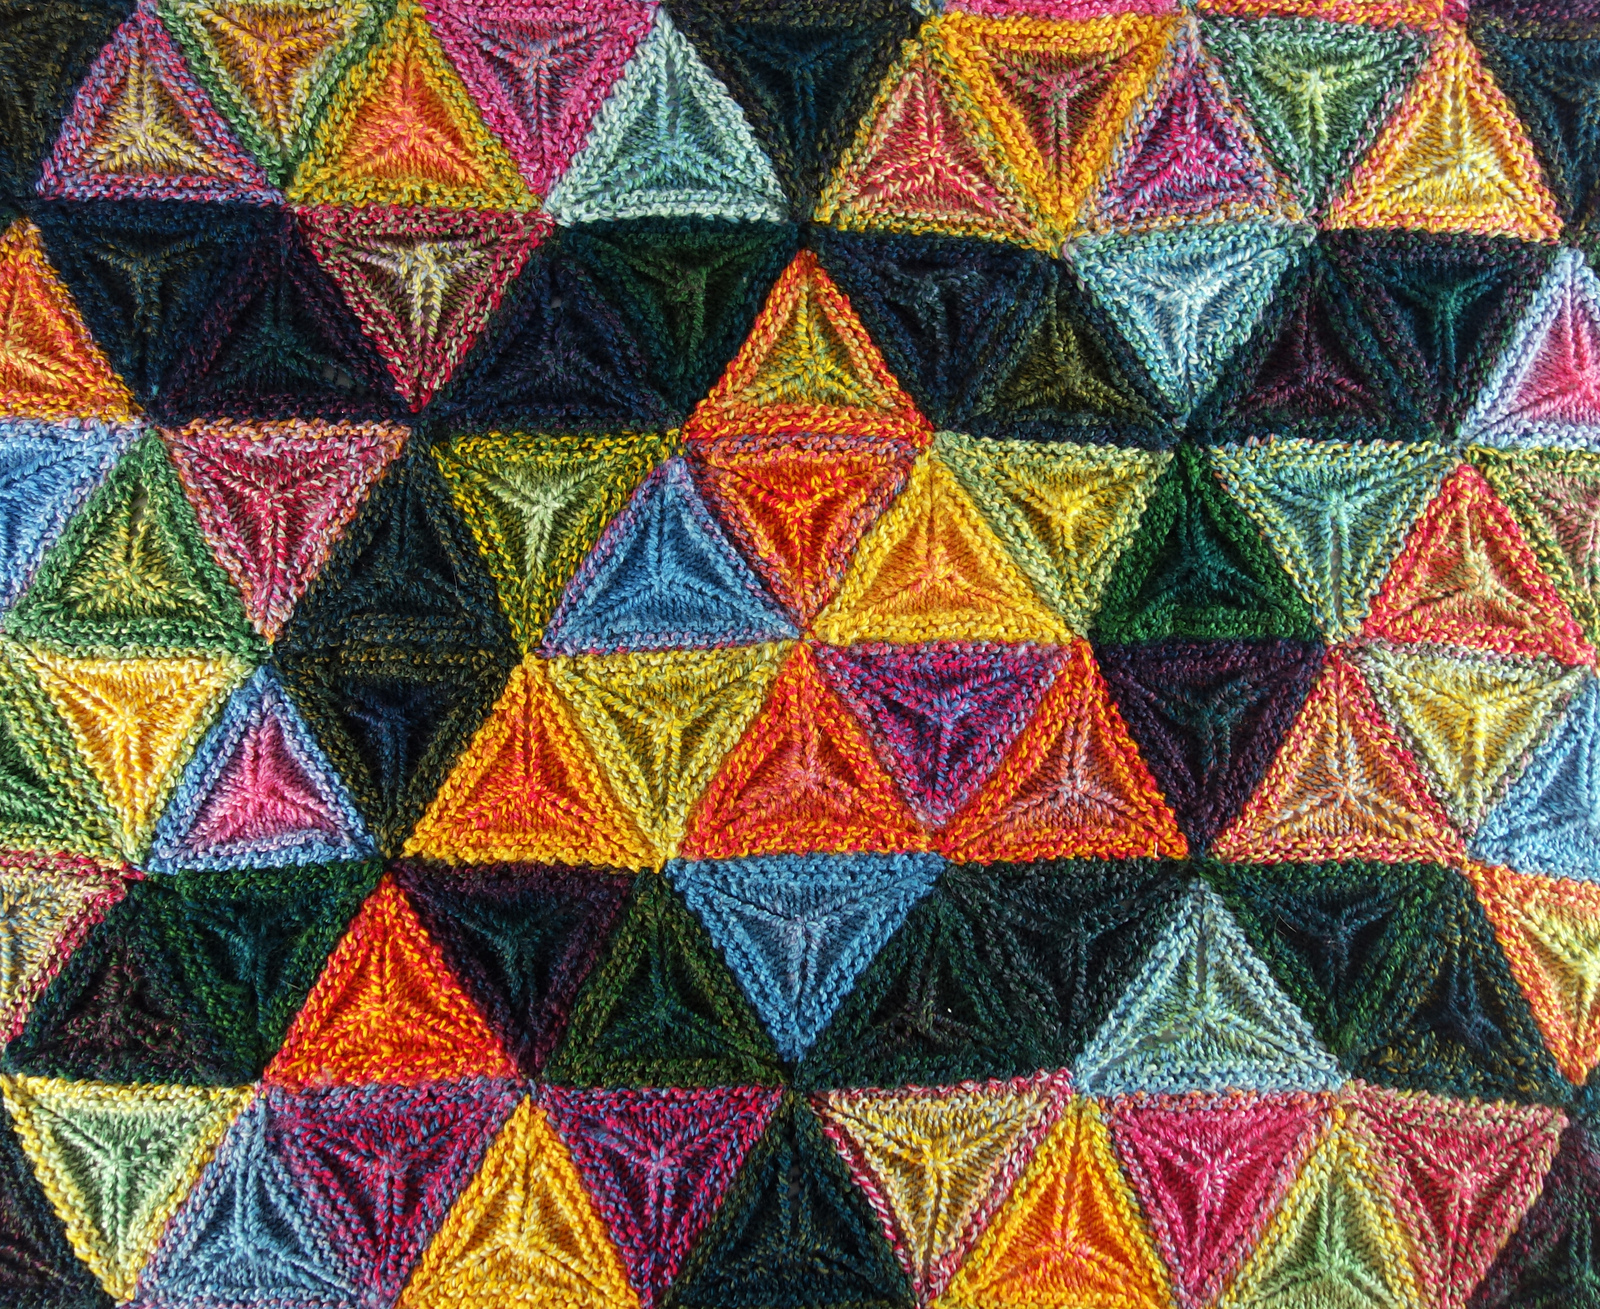 Knit a Seven Sisters Stars Afghan ... Gorgeous 3D, Geometric & Textured Pattern, FREE From Frankie Brown